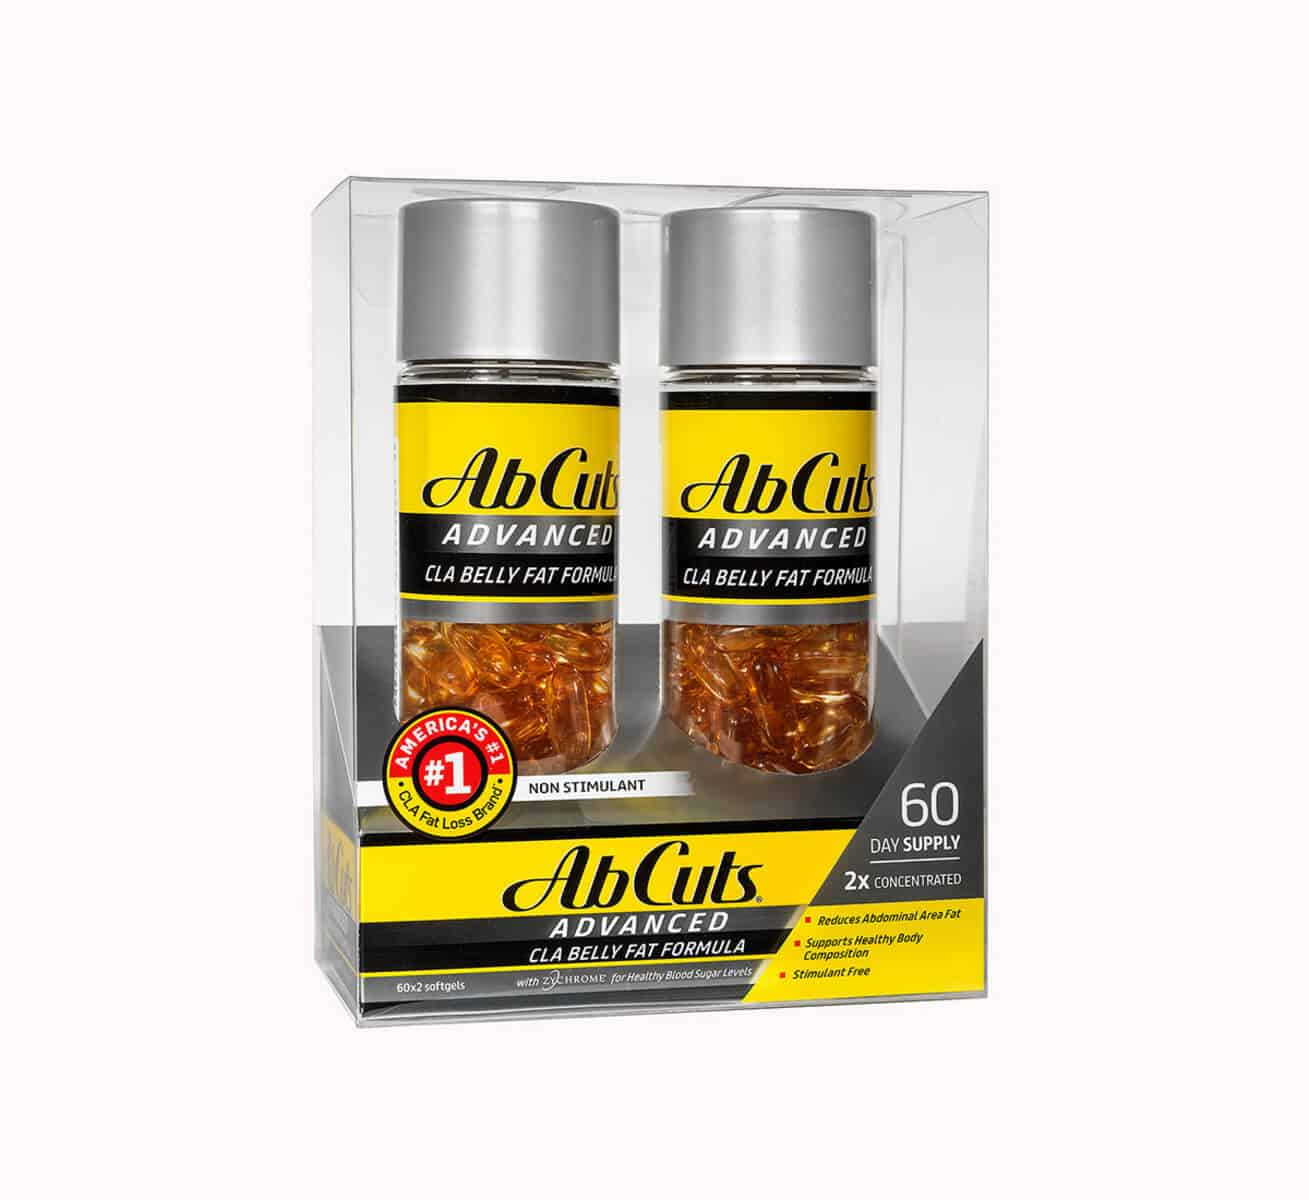 CLA Safflower Oil - Lose Weight Without The Hard Work!